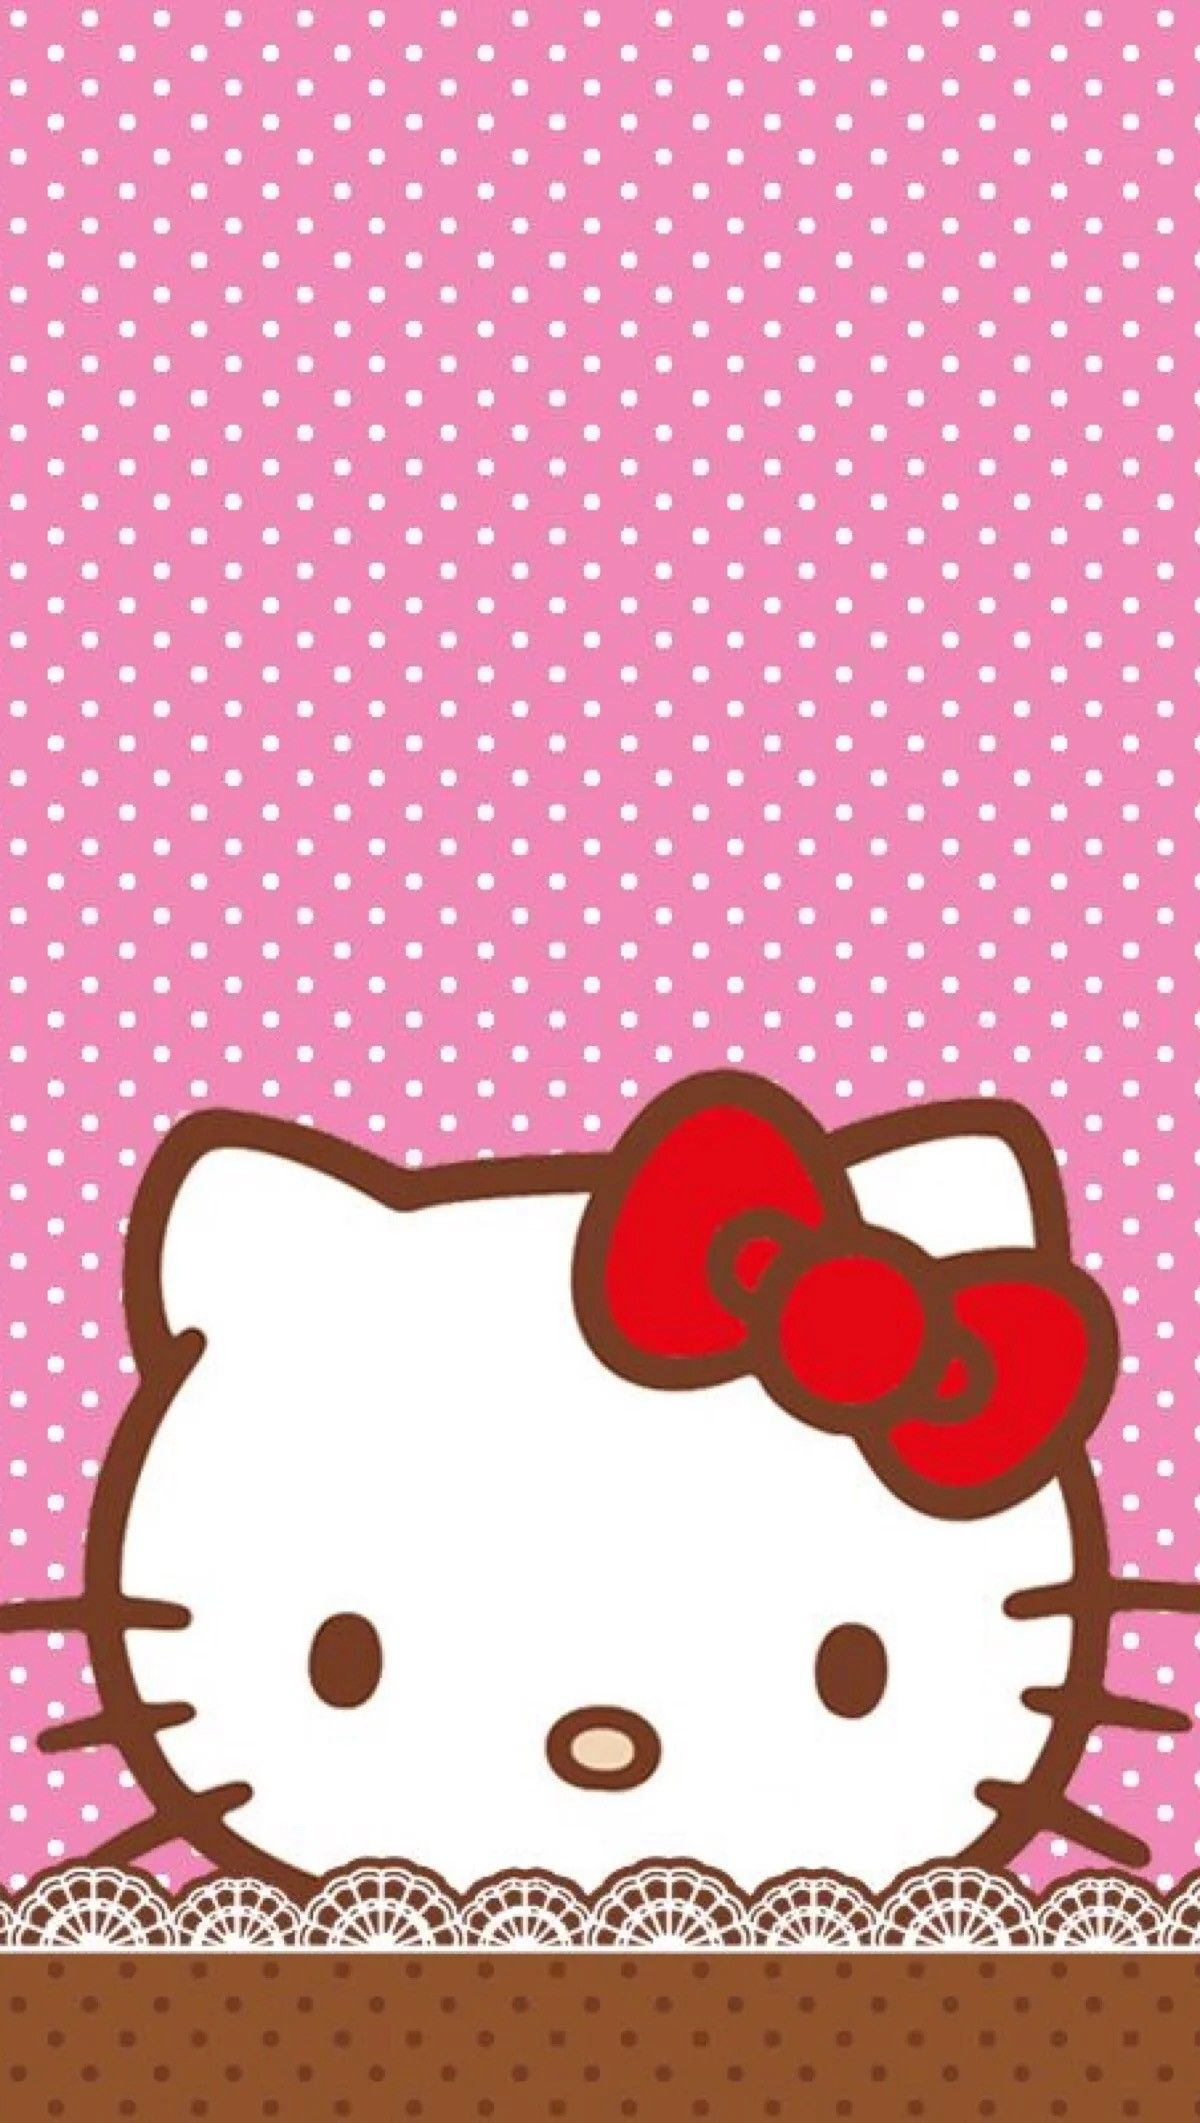 Hello Kitty Wallpapers Top Free Hello Kitty Backgrounds